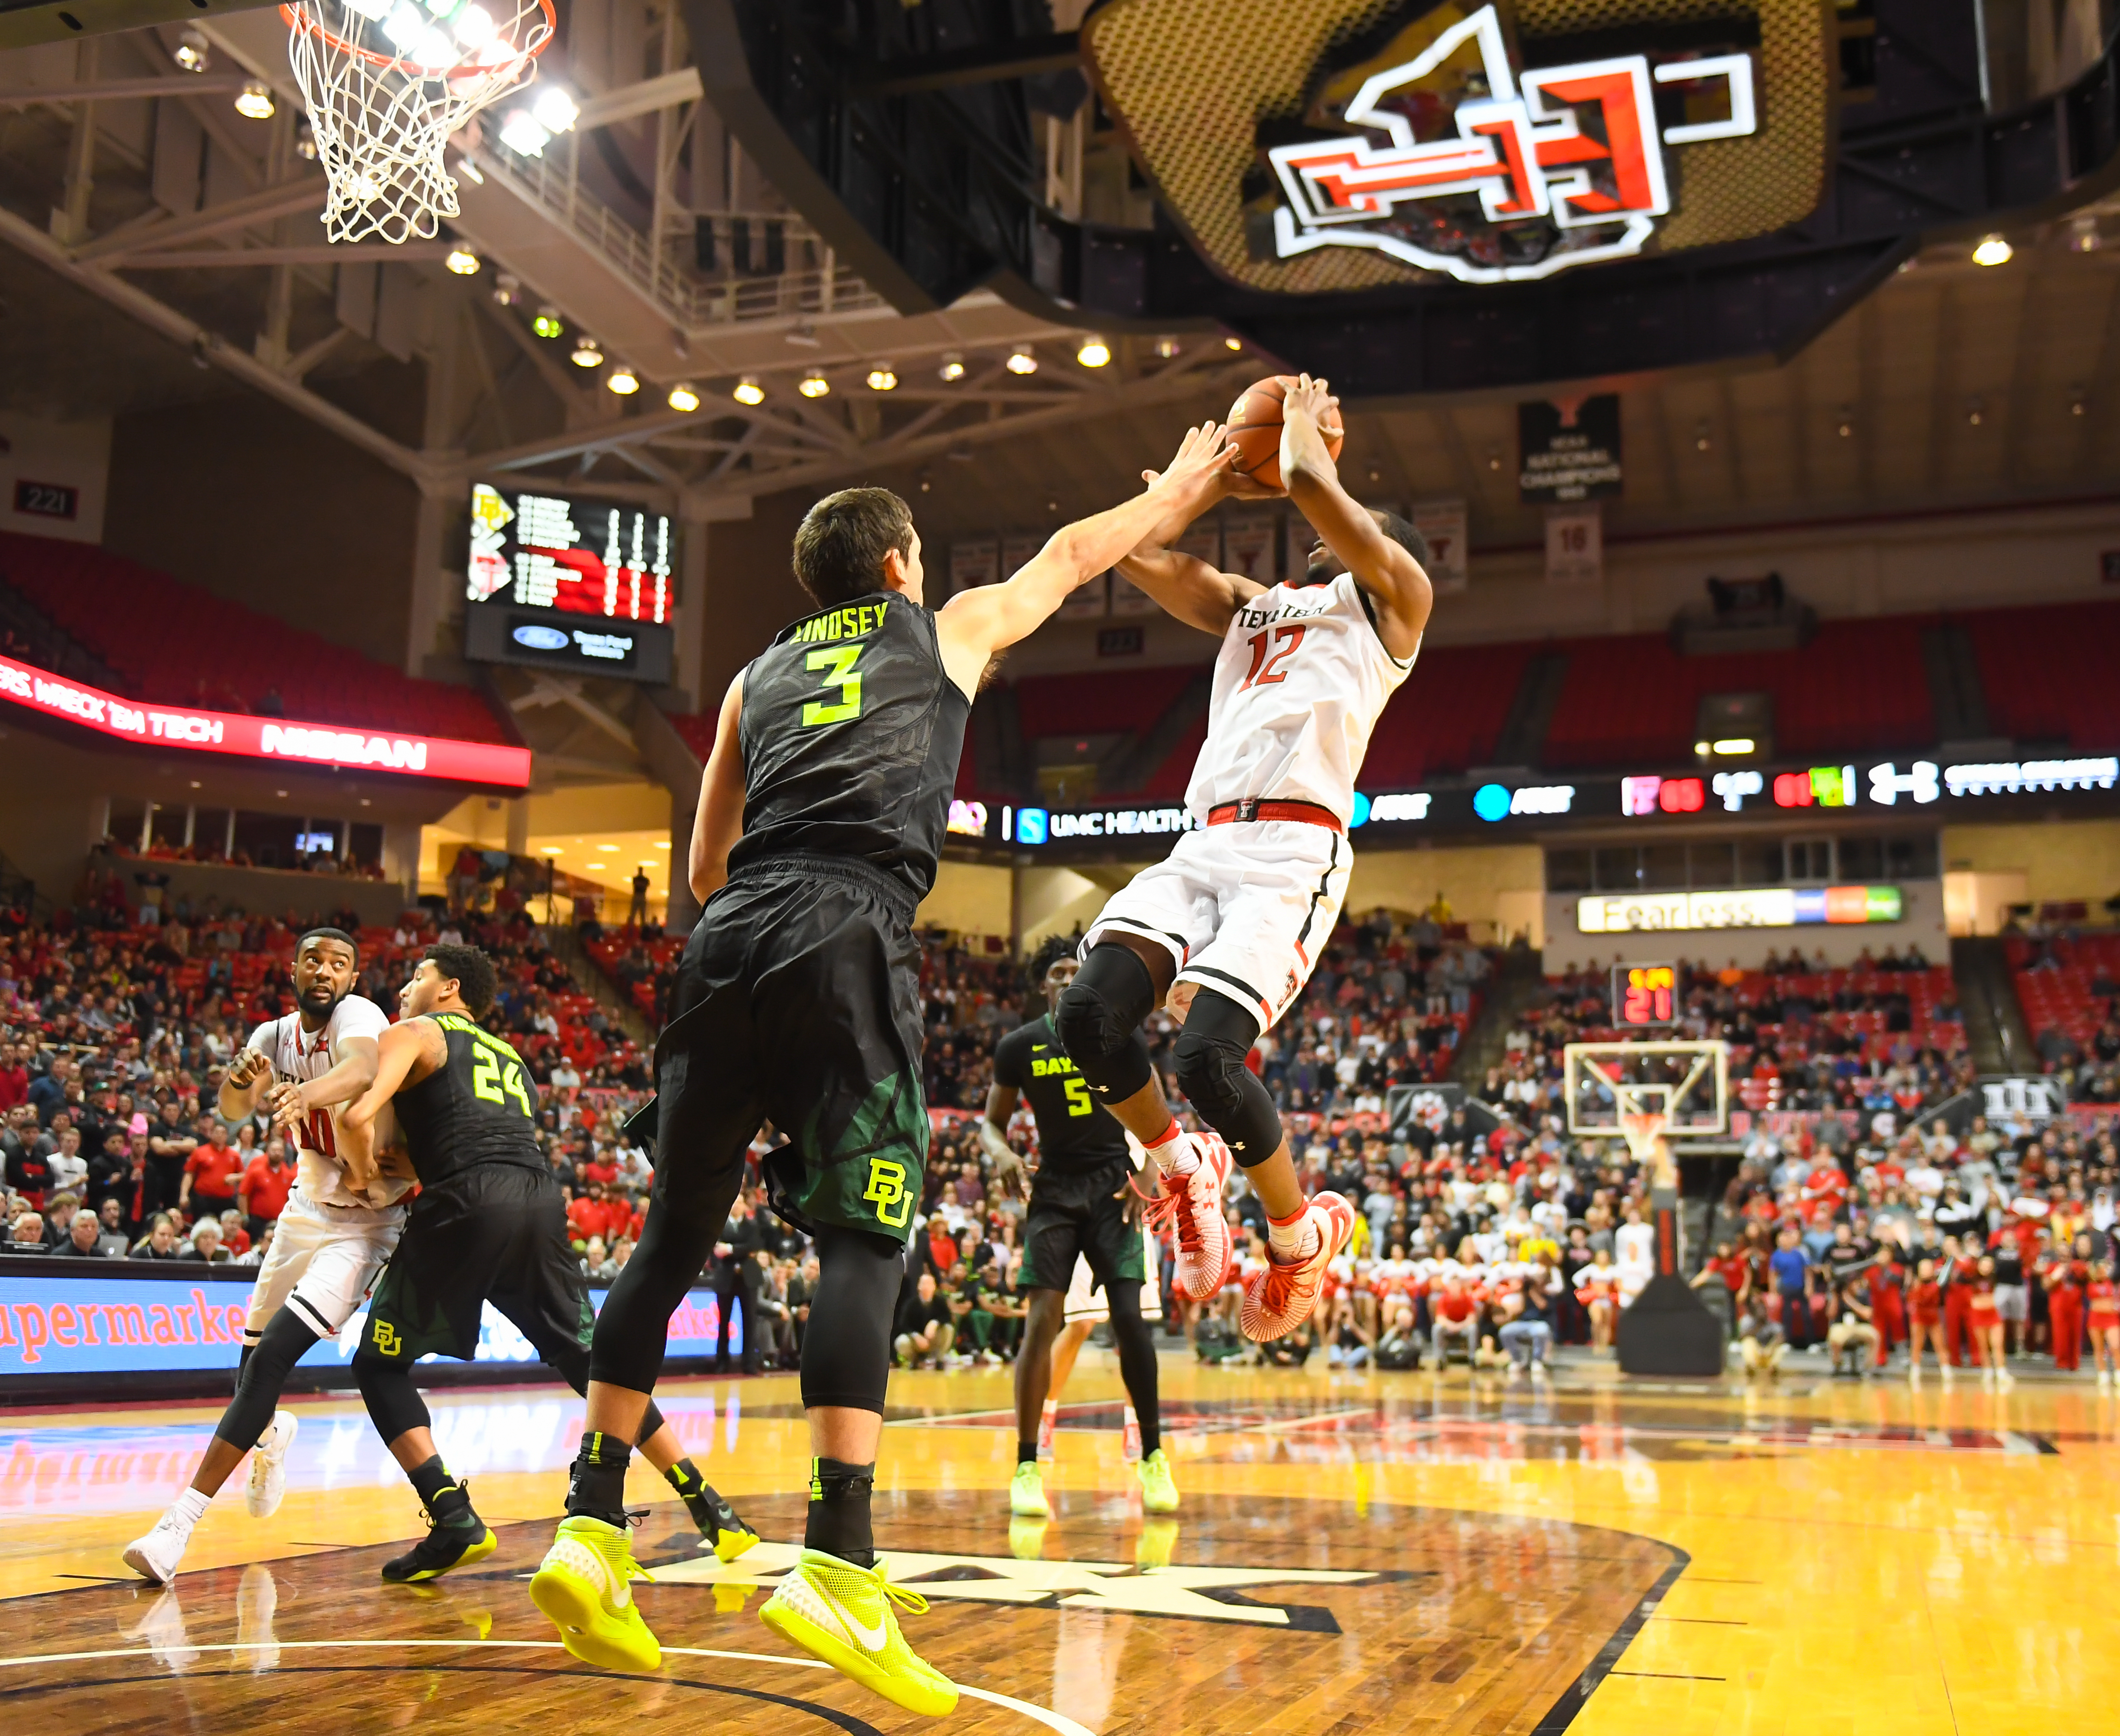 Texas Tech Basketball Continues To Build Via Generous Donation